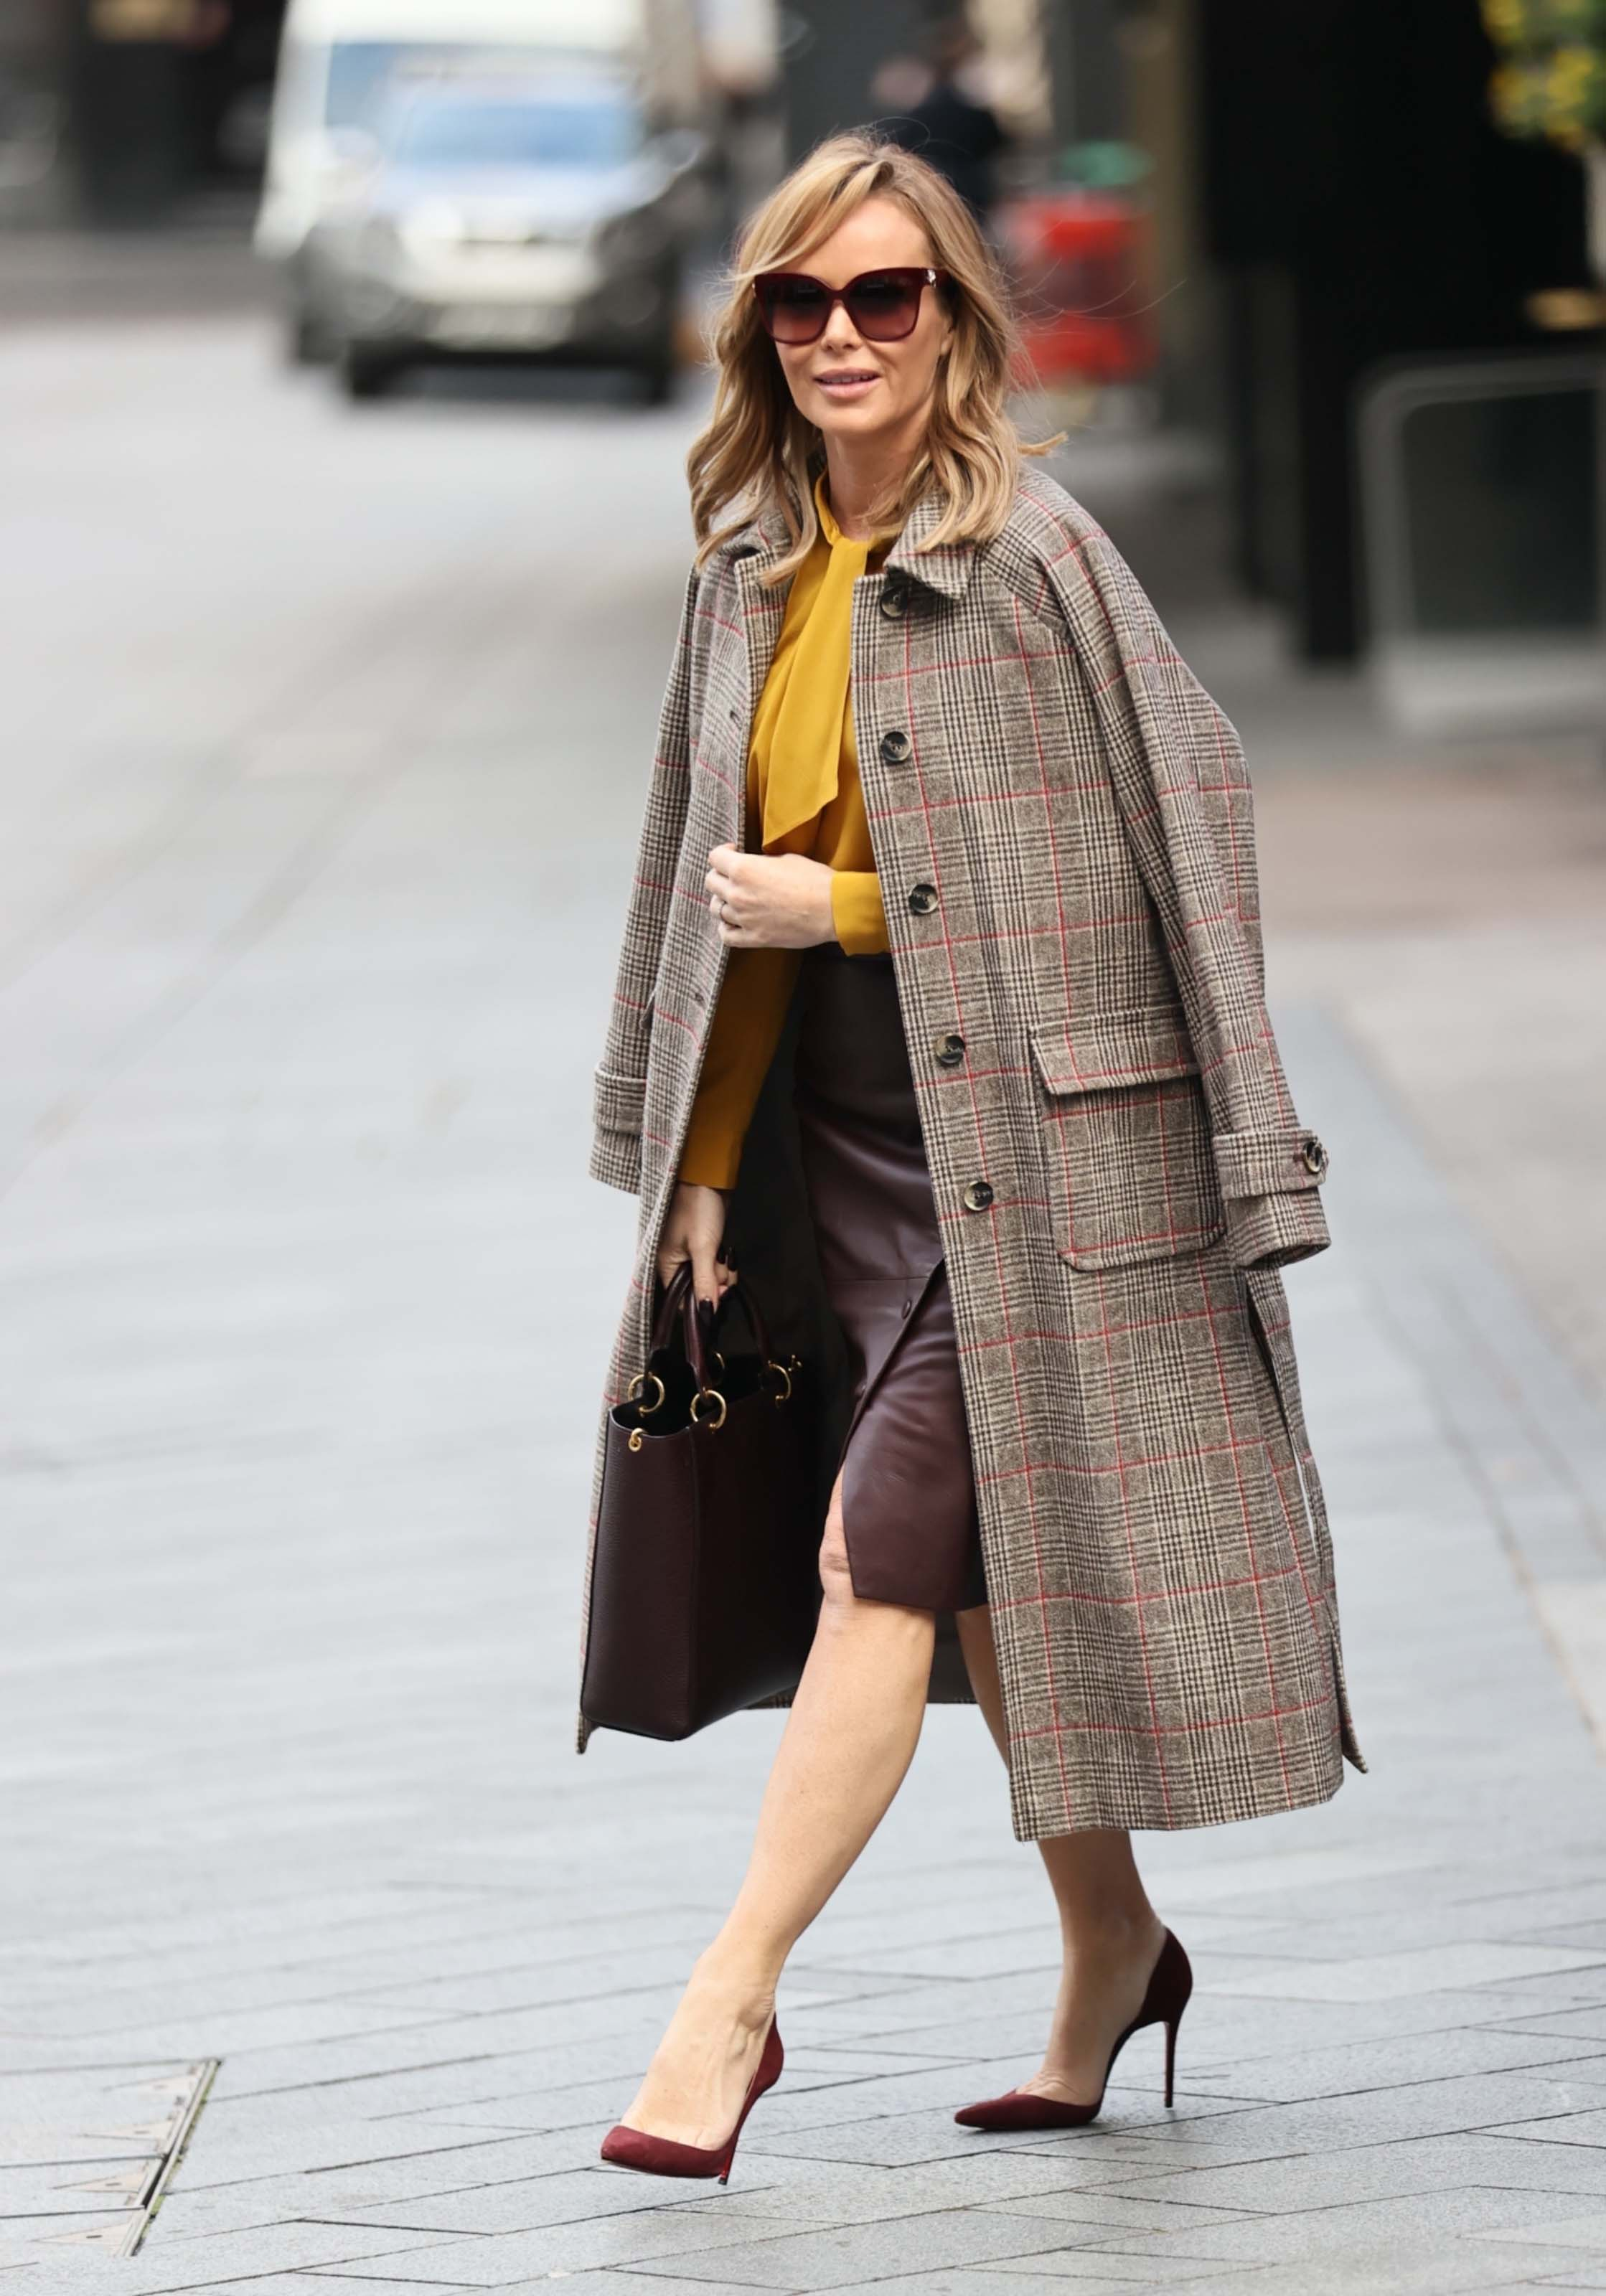 Amanda Holden seen at Global Radio Studios in London